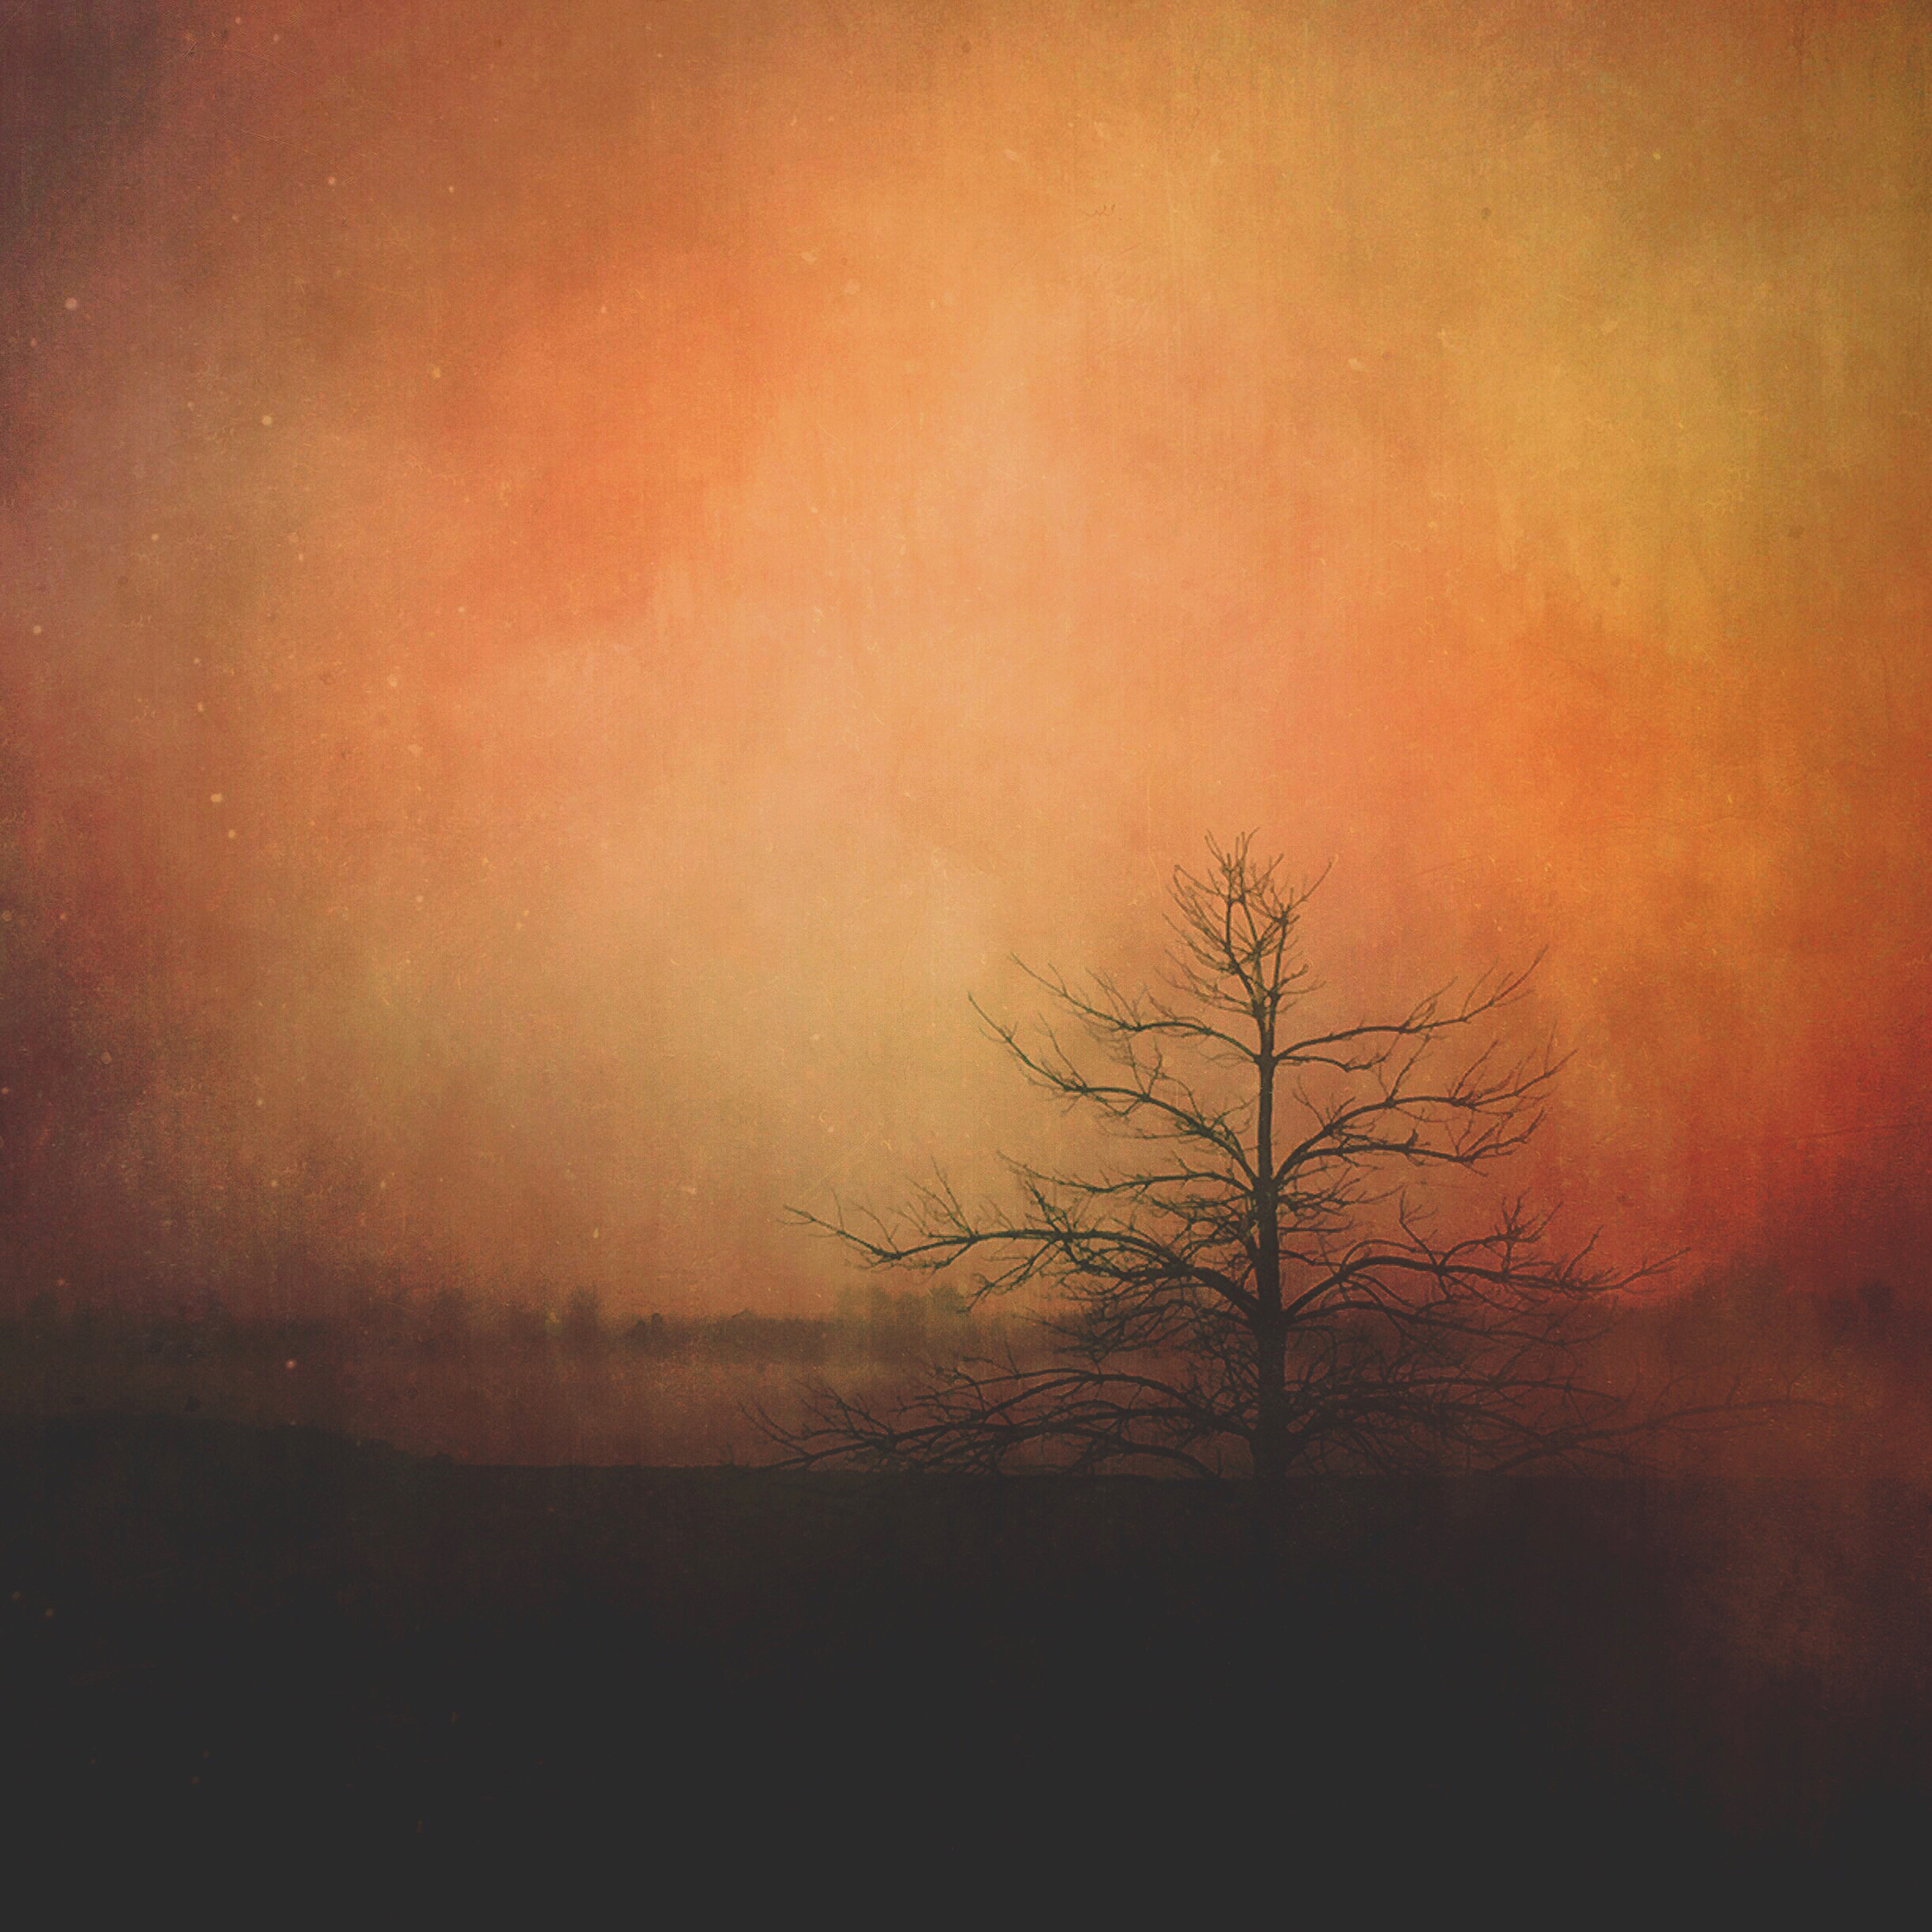 AAS_The Fire Within_300_8x8.jpg